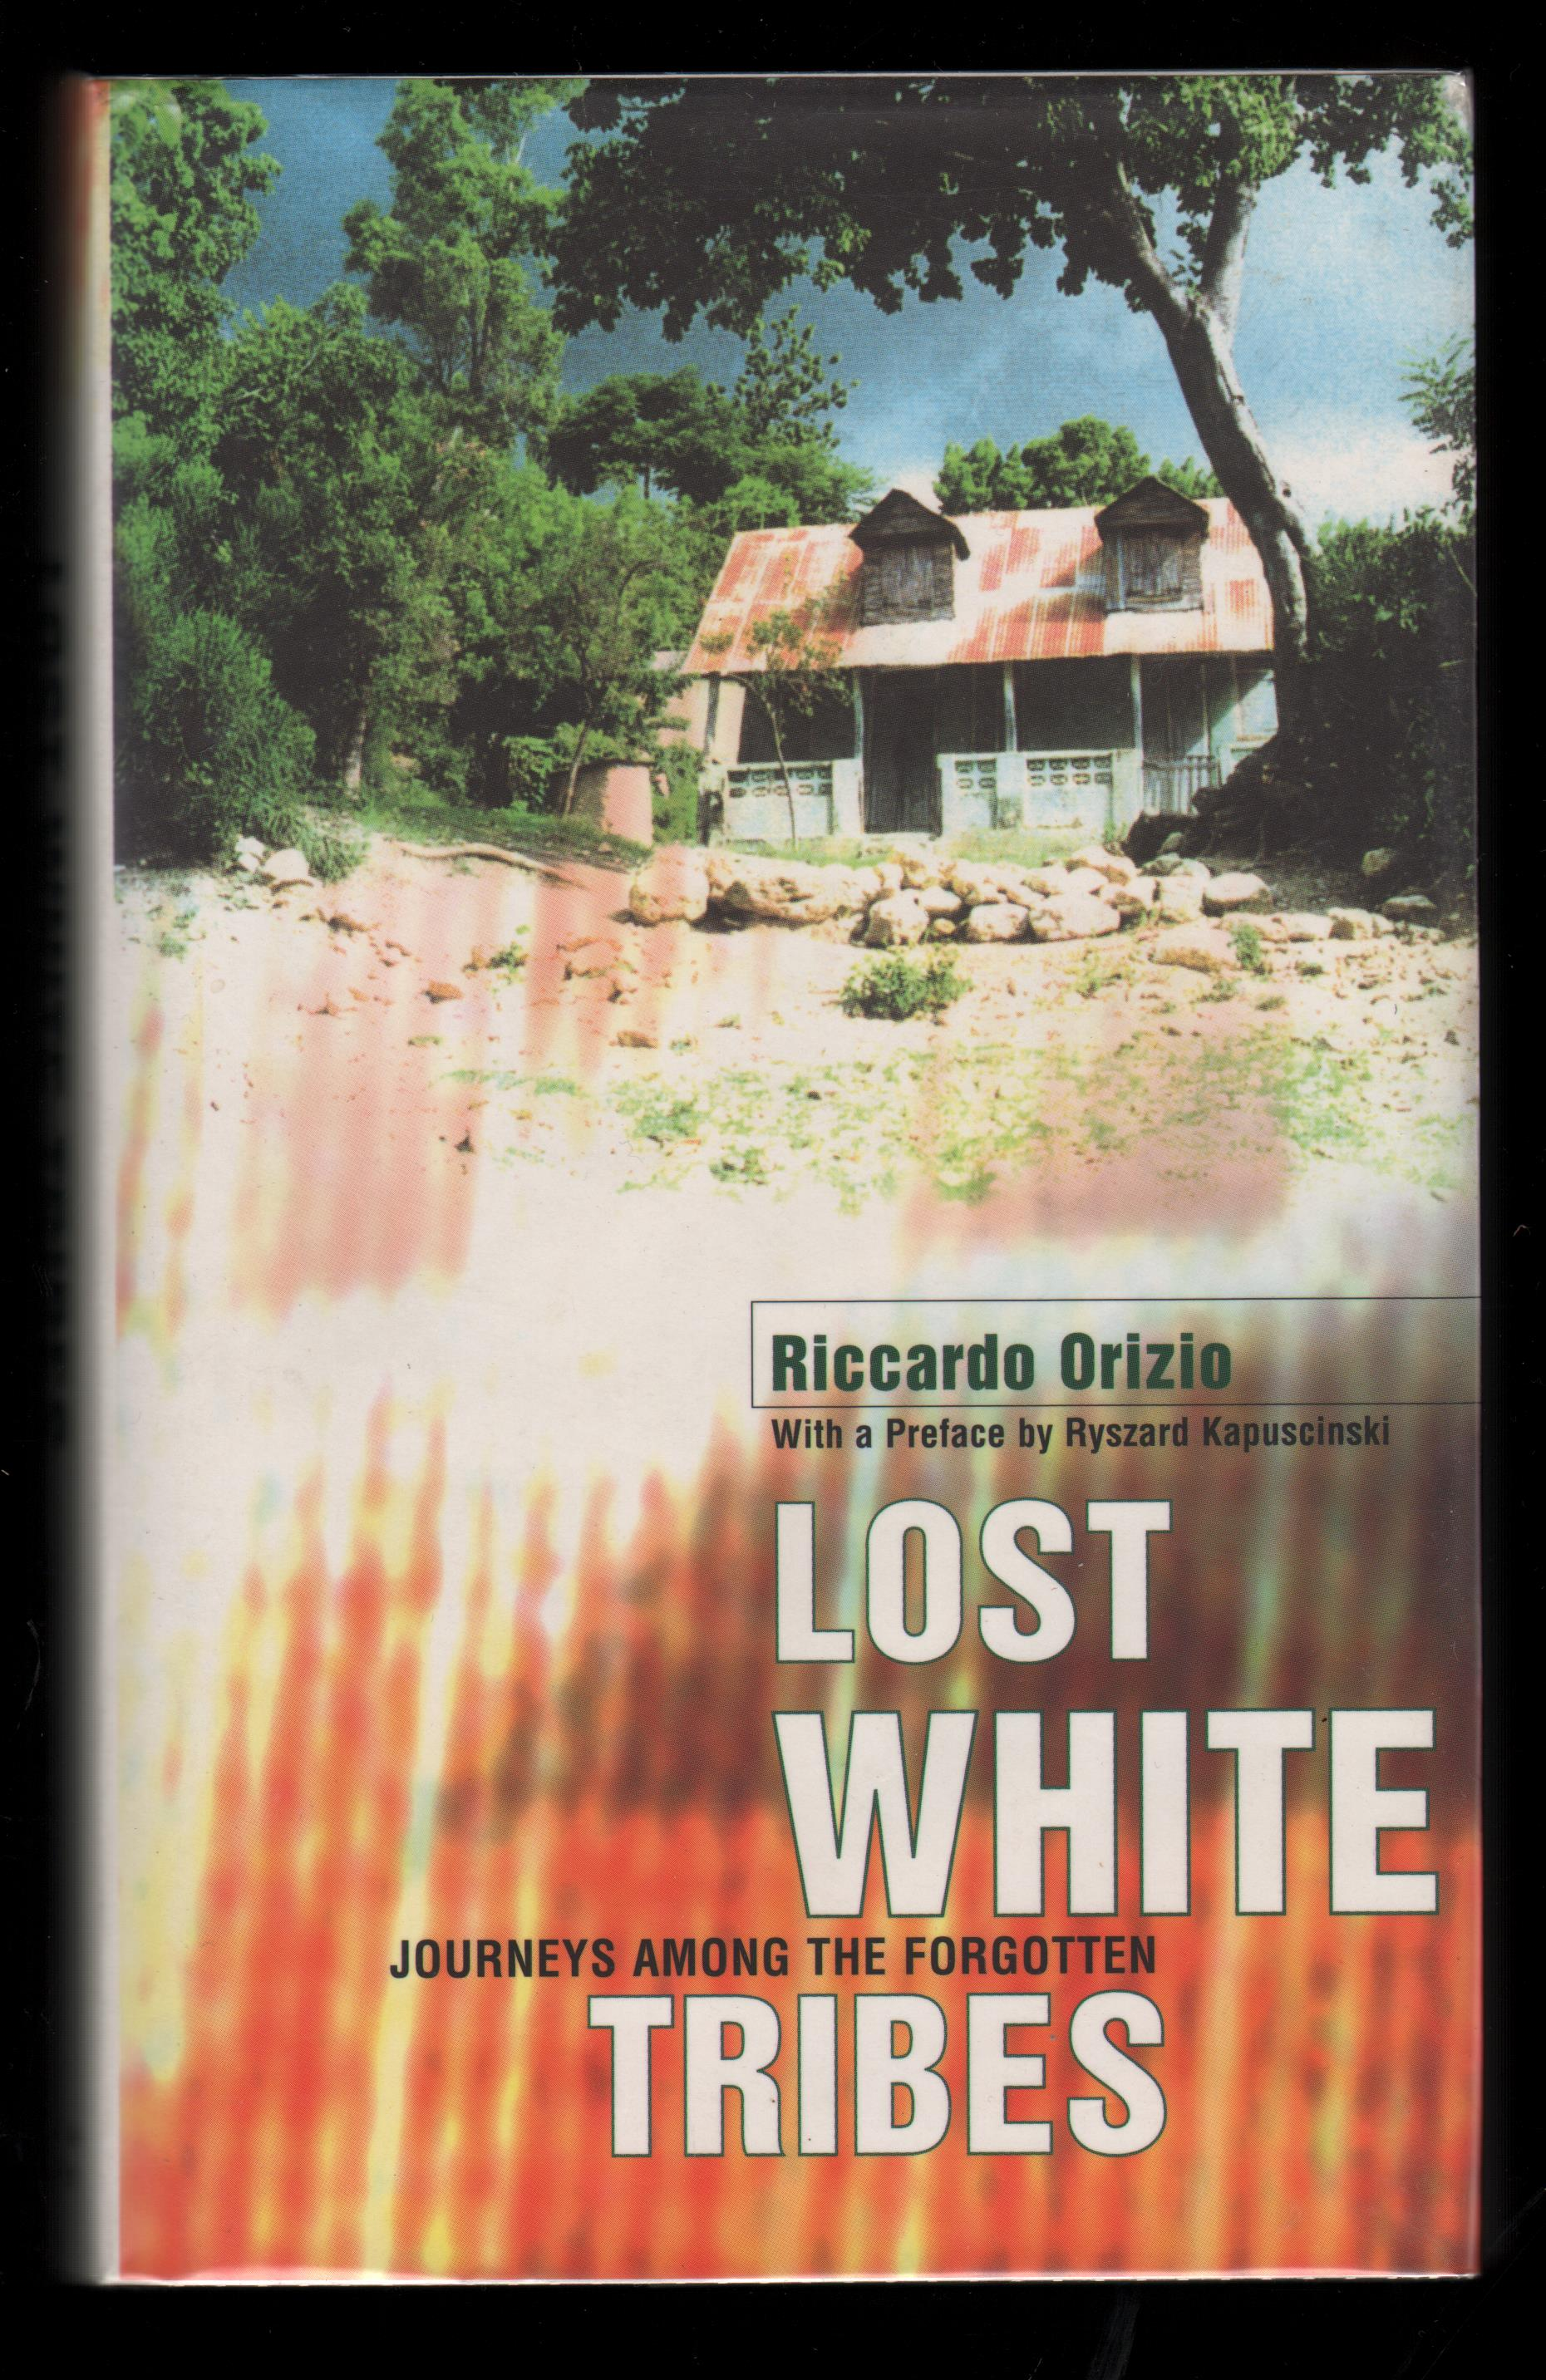 Image for Lost White Tribes. Journeys Among the Forgotten. (Translated by Avril Bardoni).